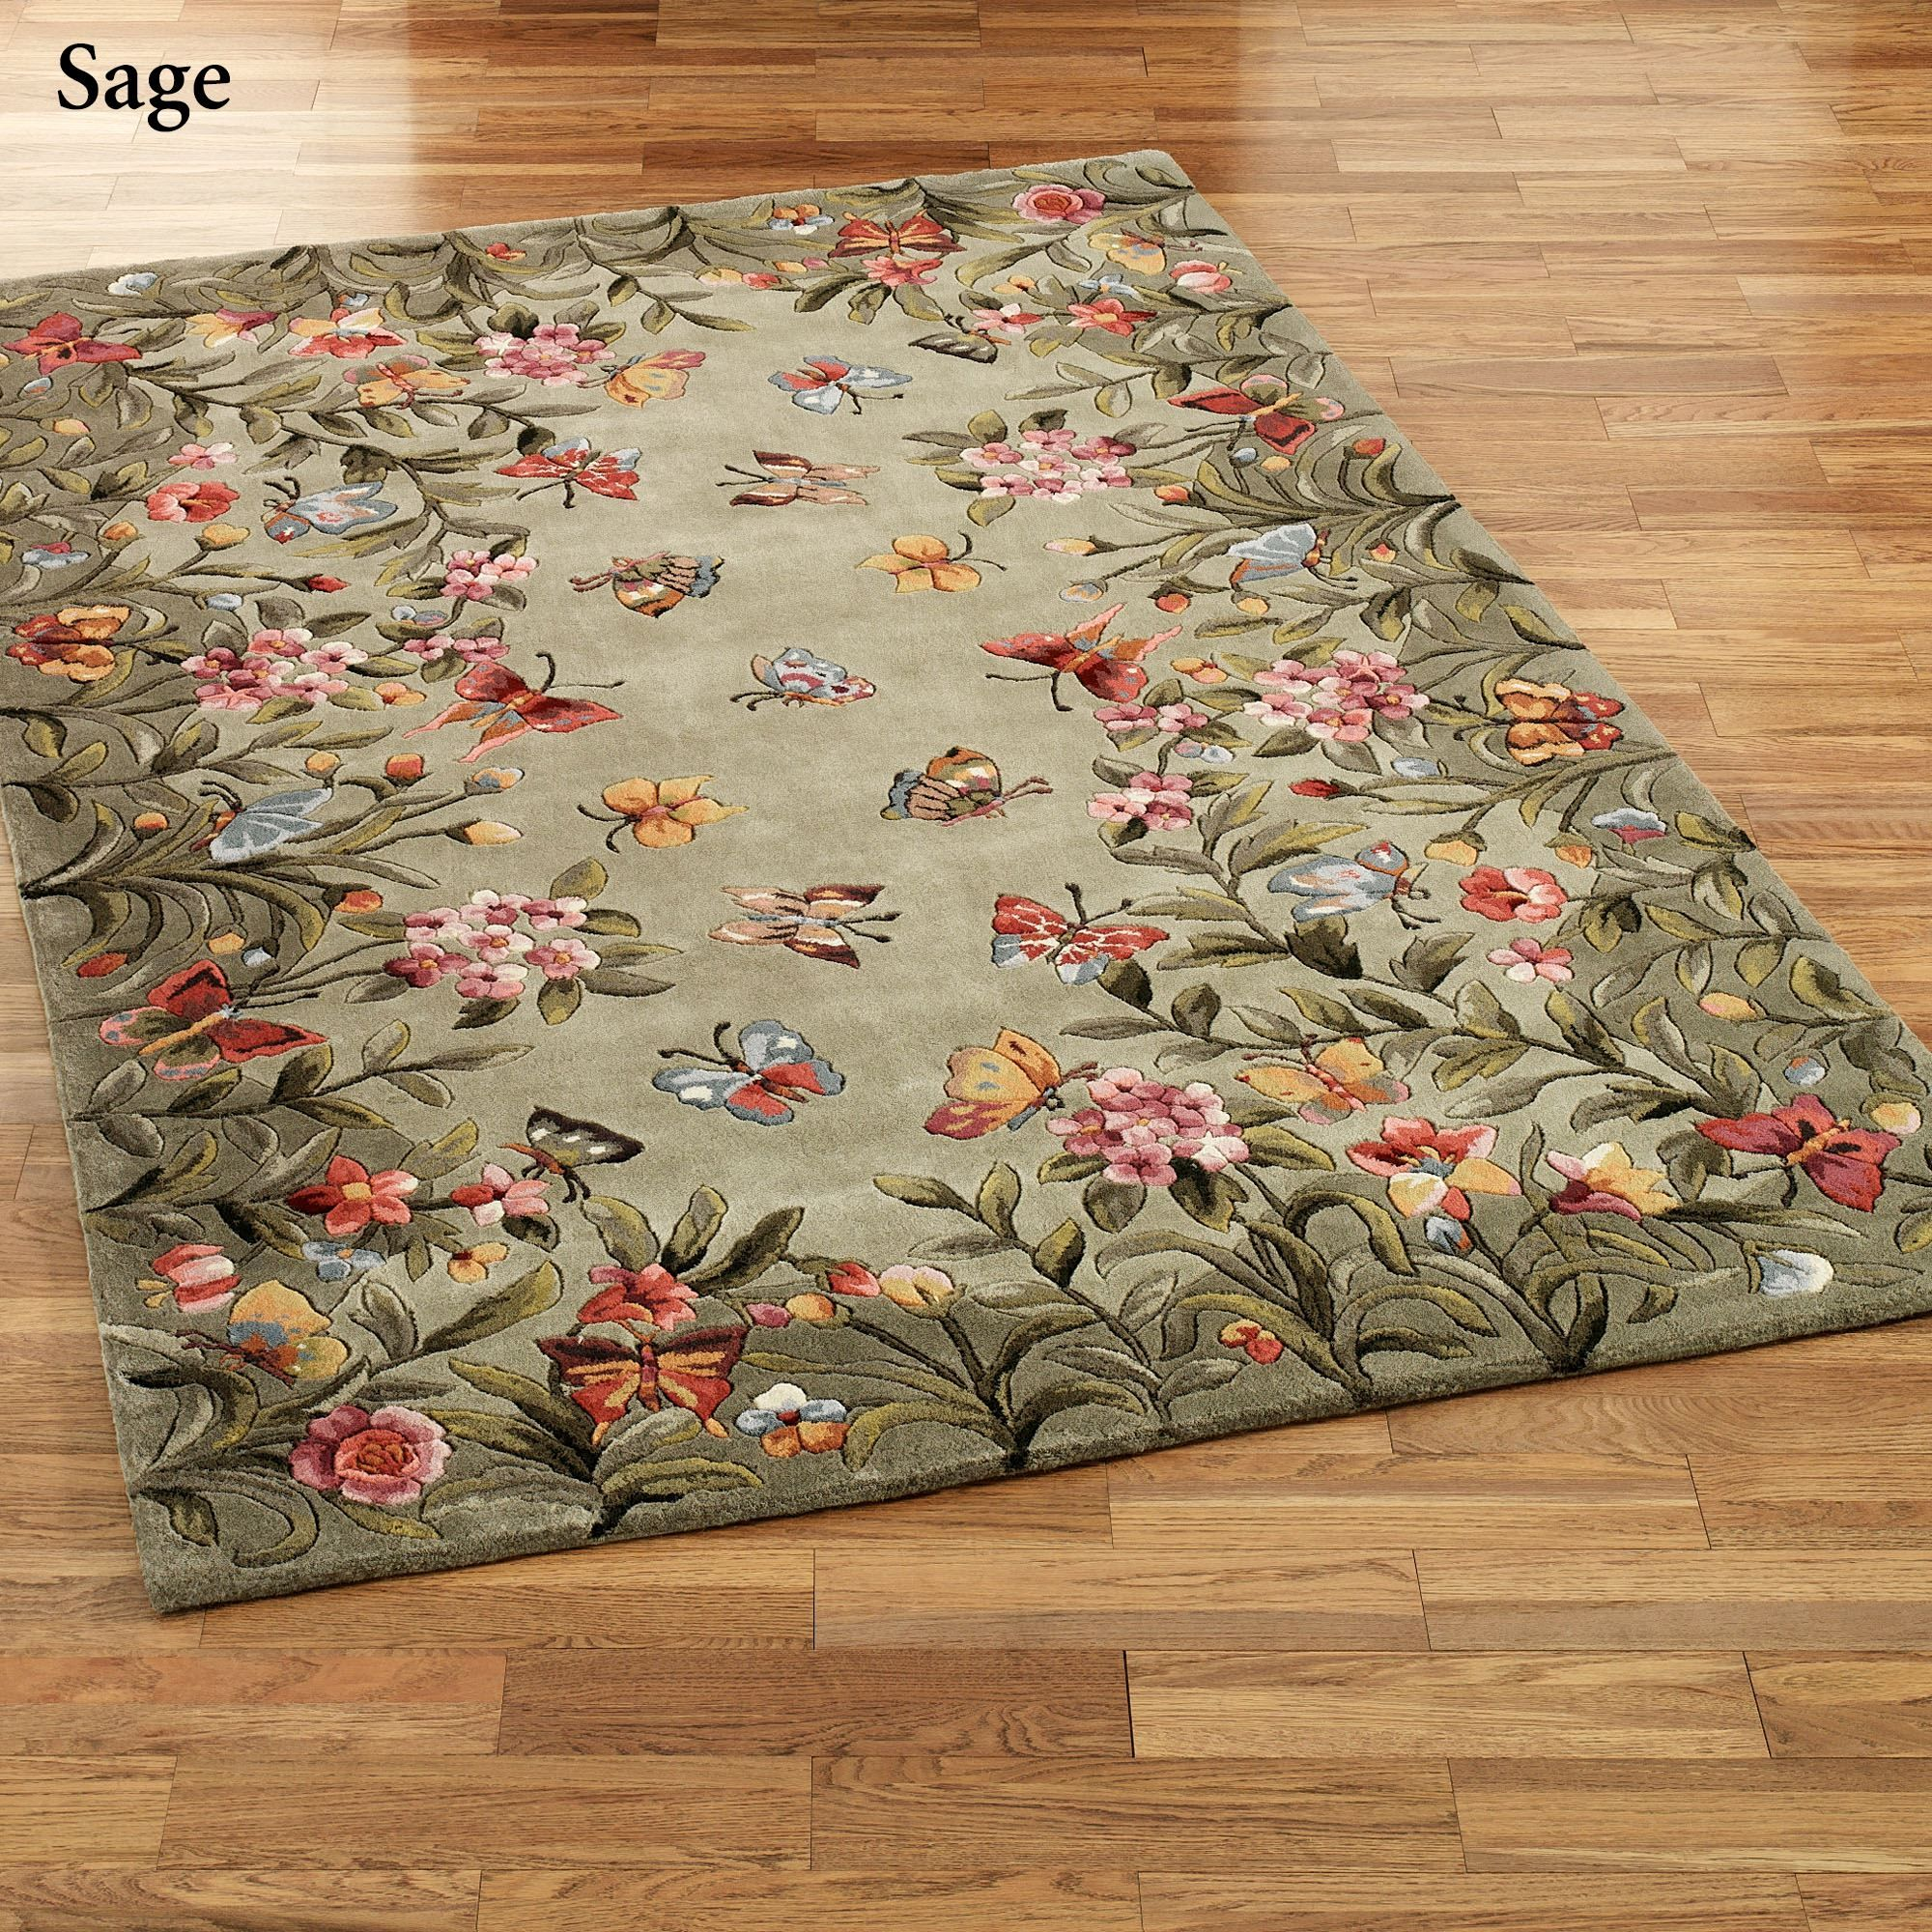 Athena Garden Round Area Rugs Rugs Rugs Floral Area Rugs